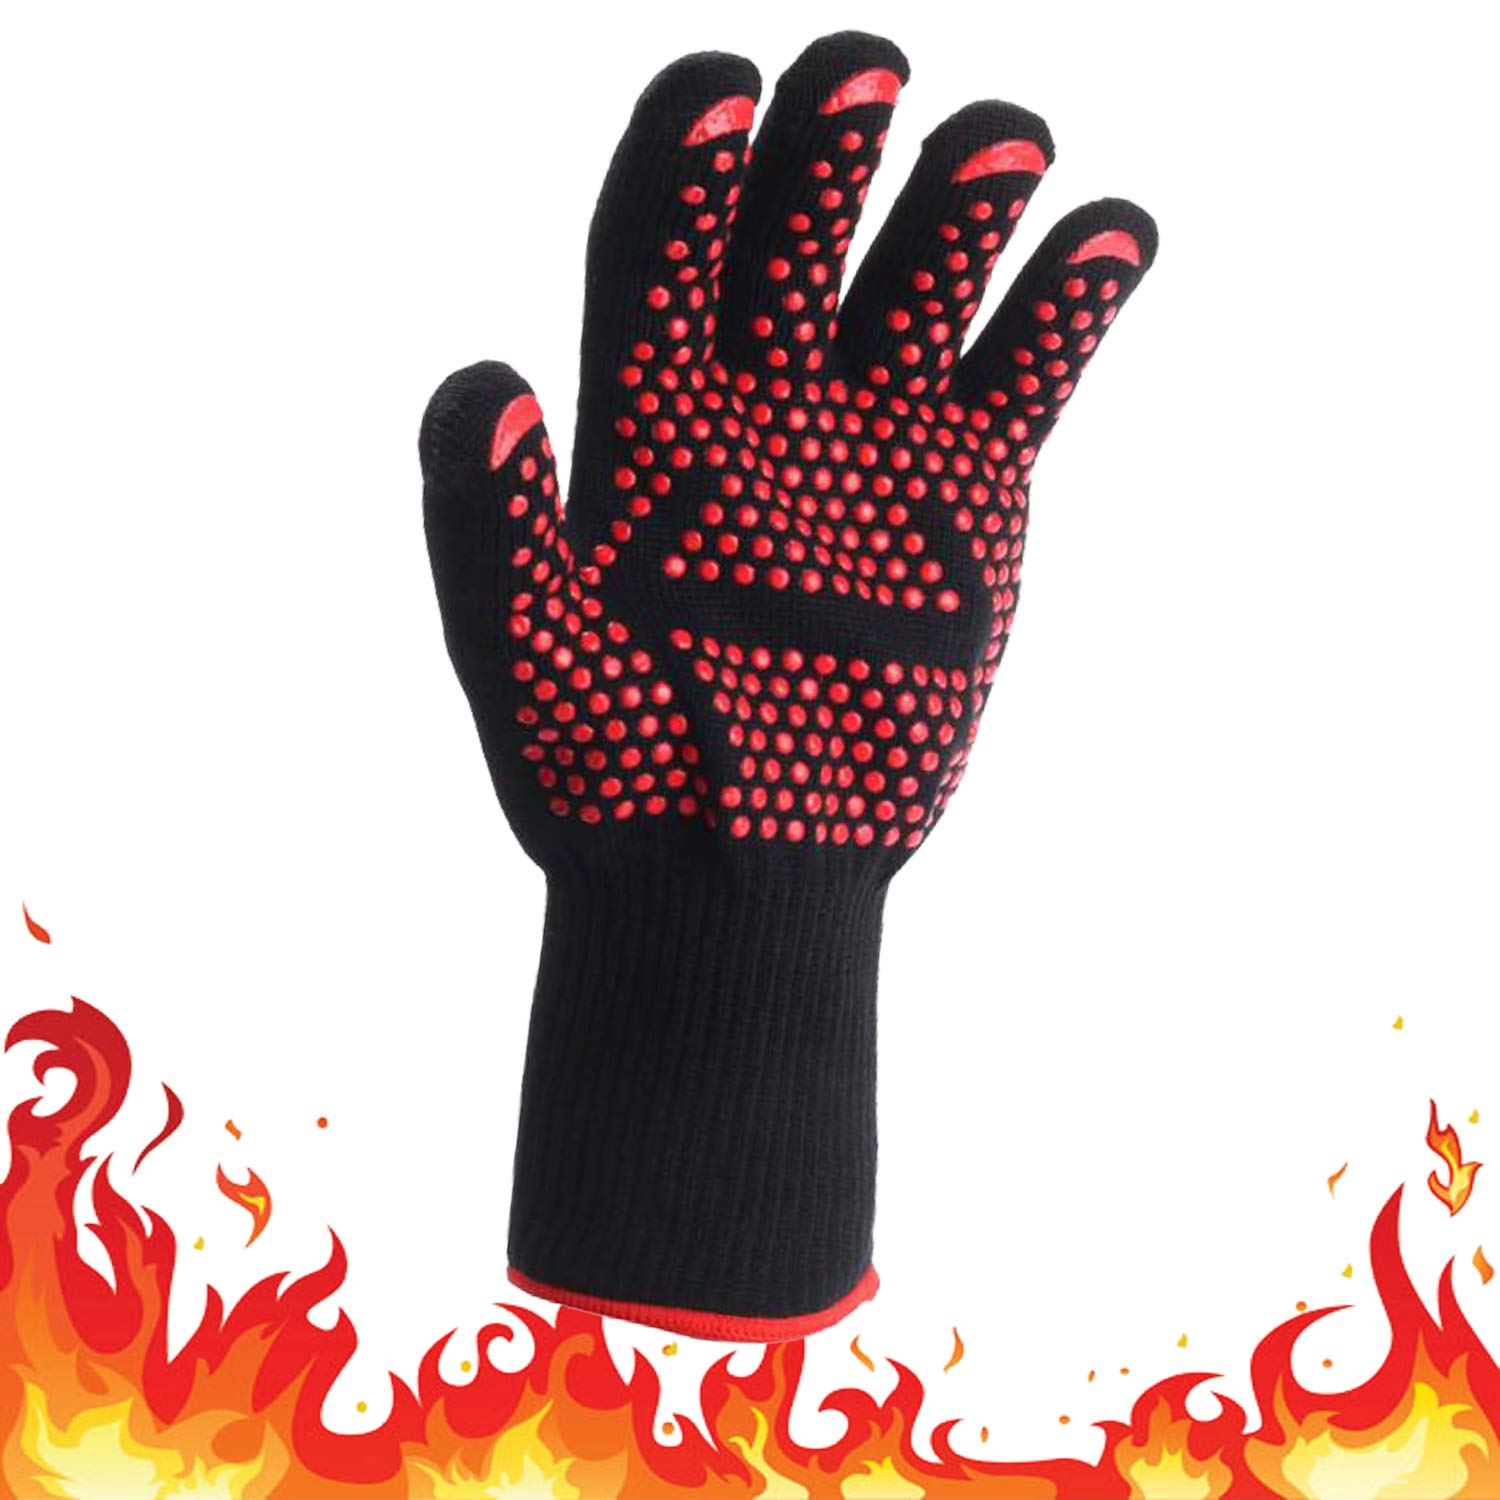 Amy Sport Extreme Heat Resistant BBQ Gloves Fireproof Up to 932°F Value 1 Pcs or 1 Pair, Food Grade Non-Slip Silicone Kitchen Cooking Oven Mitts for Grilling Baking Welding Cutting (1 Pcs)